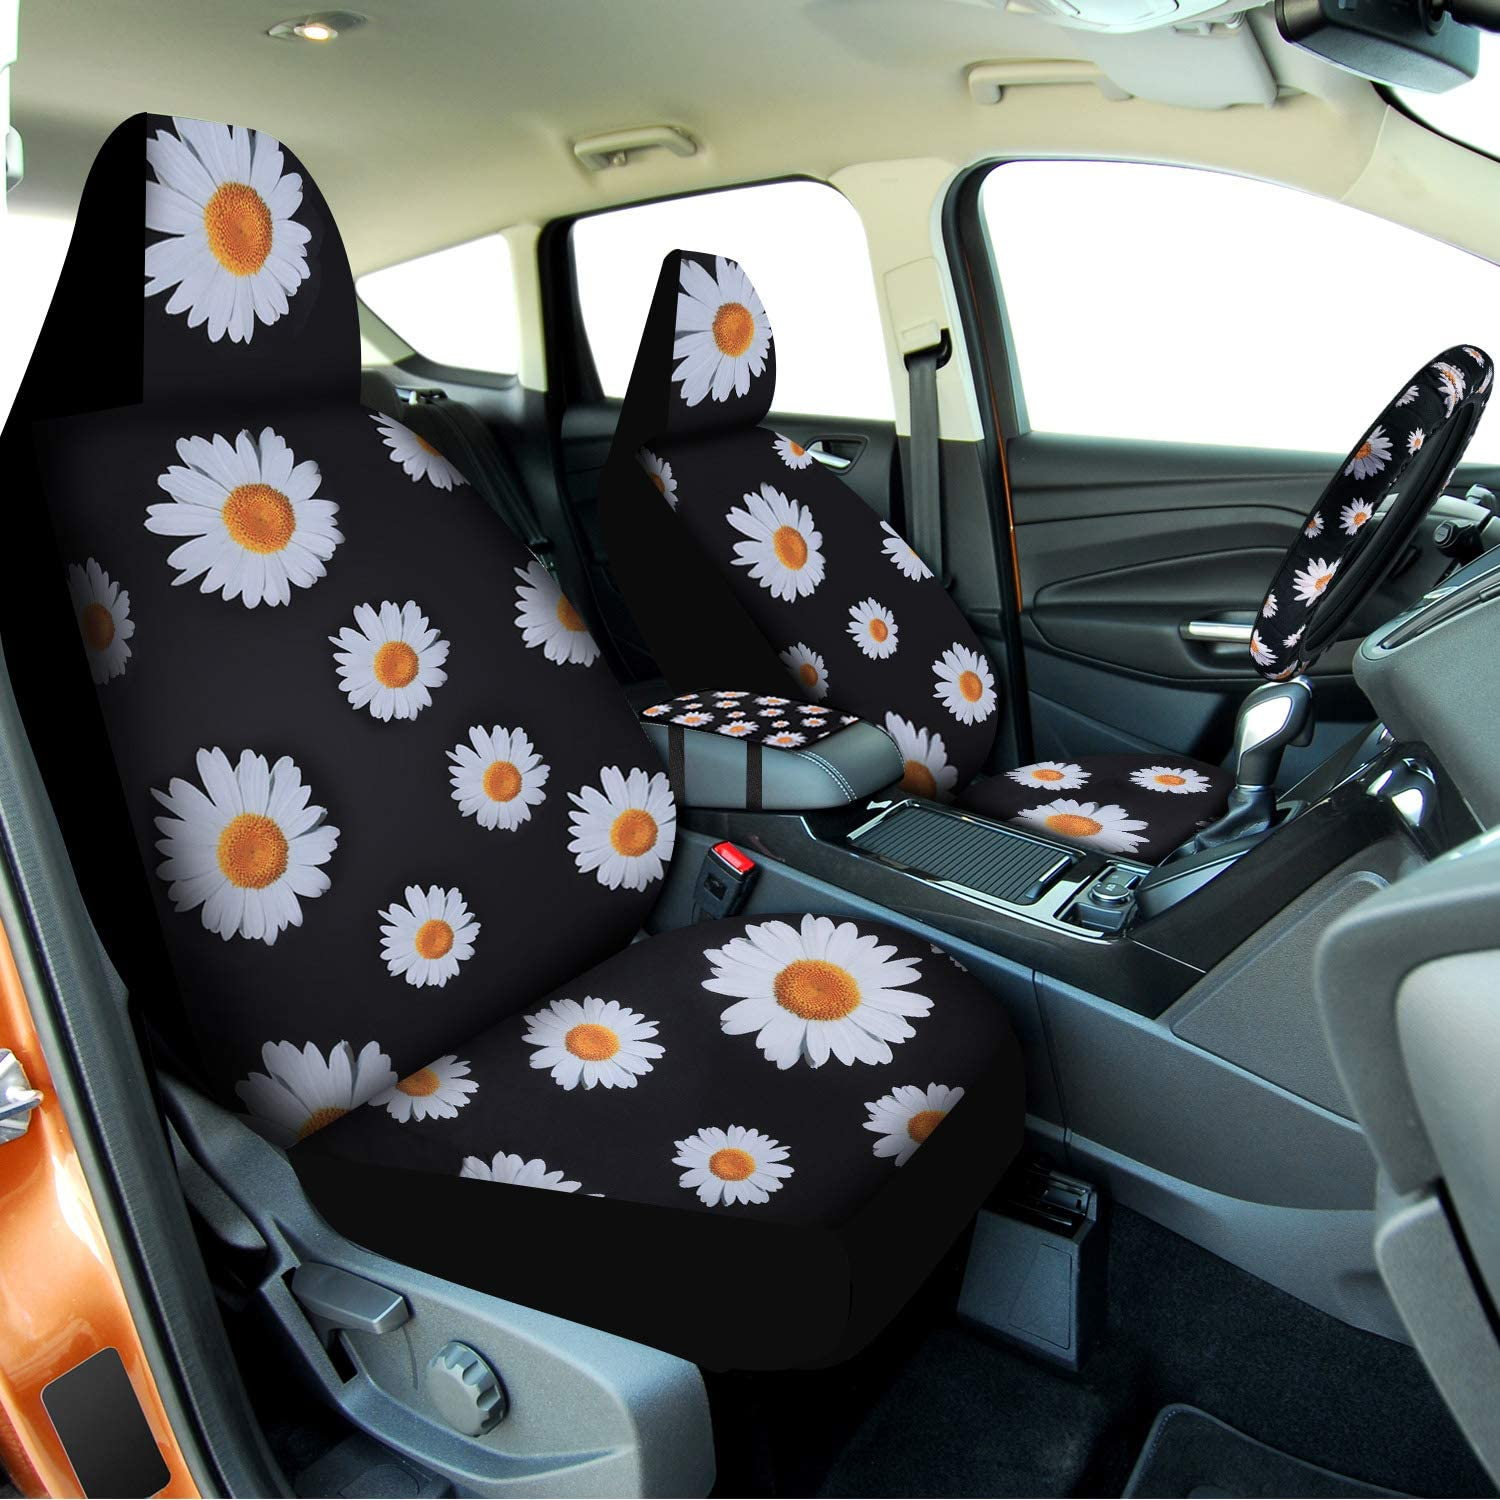 and Car Cup Holder Coaster for Most Car Decoration 8 Pieces Daisy Car Accessories Set Includes Car Front Seat Covers Steering Wheel Covers Seat Belt Shoulder Pads Covers Center Console Armrest Pad